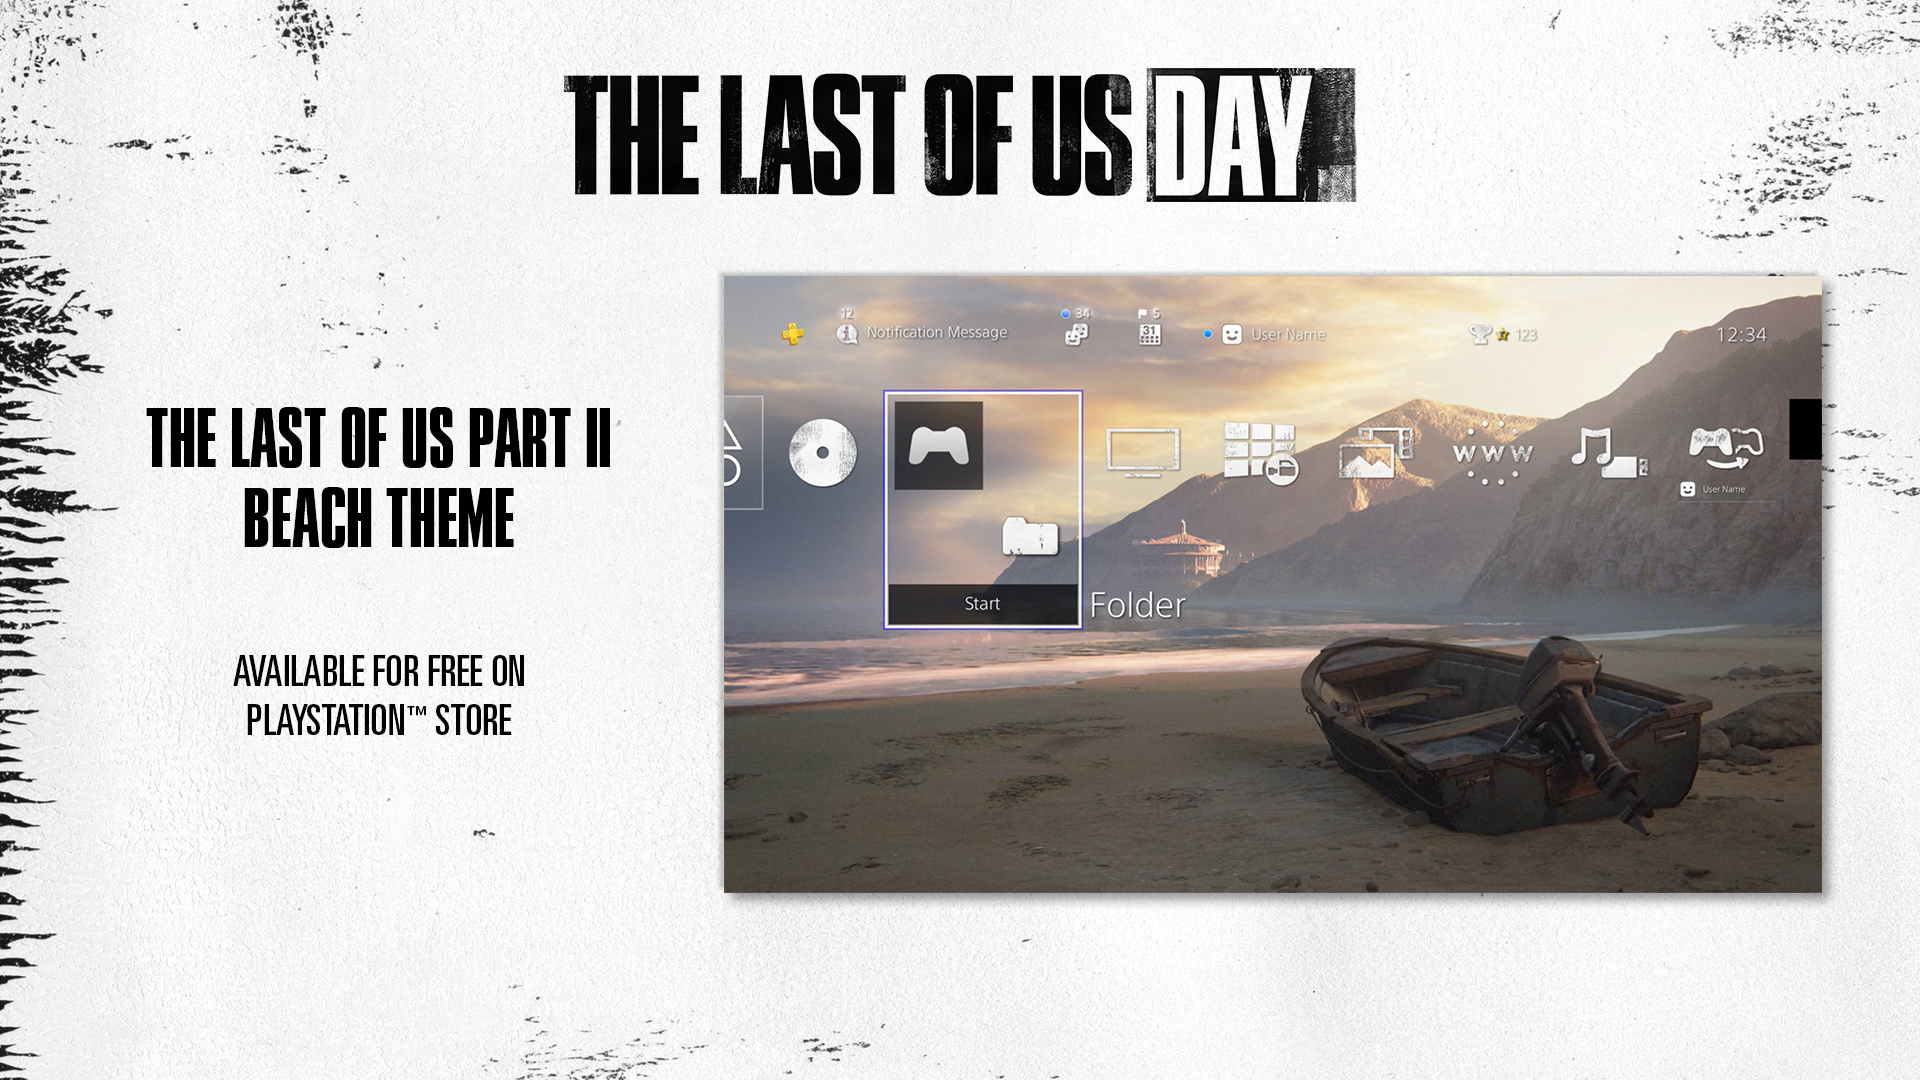 The Last Of Us.Day PS4 Theme